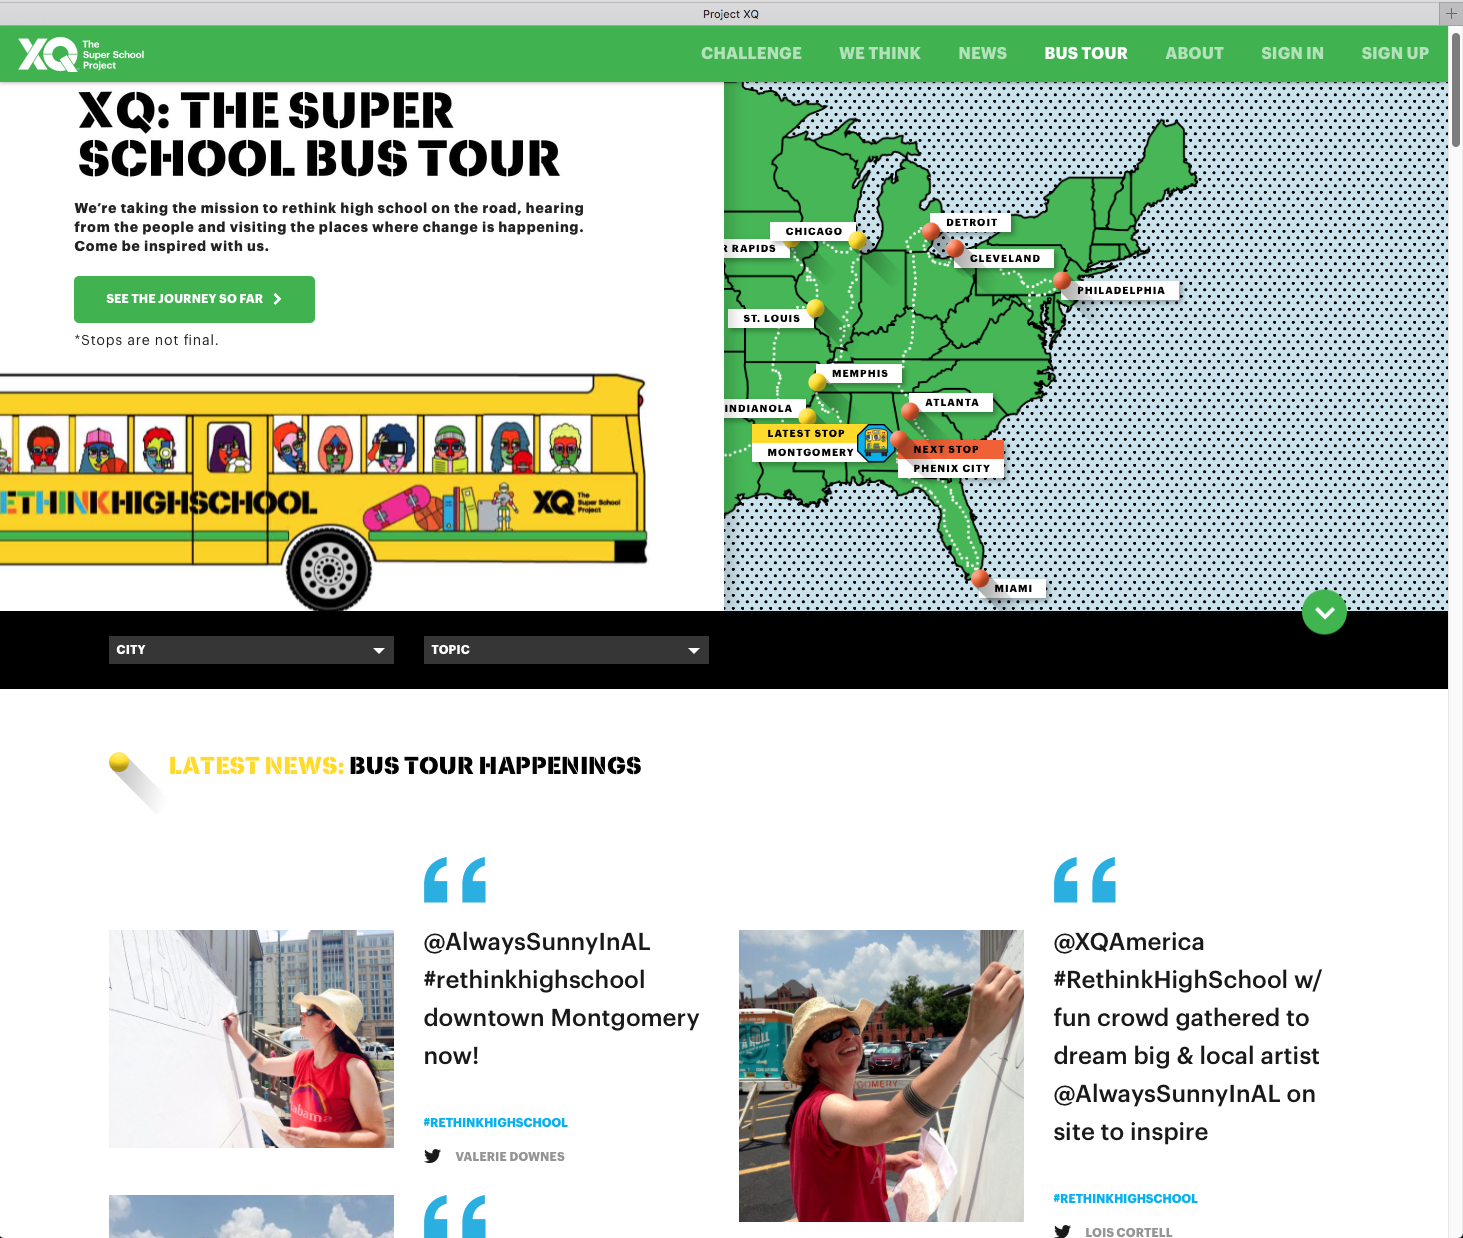 XQ America asked me to lead a community art project on their Montgomery, AL and Phenix City, AL Super School Bus stops on 6/17/16 and 6/21/16!